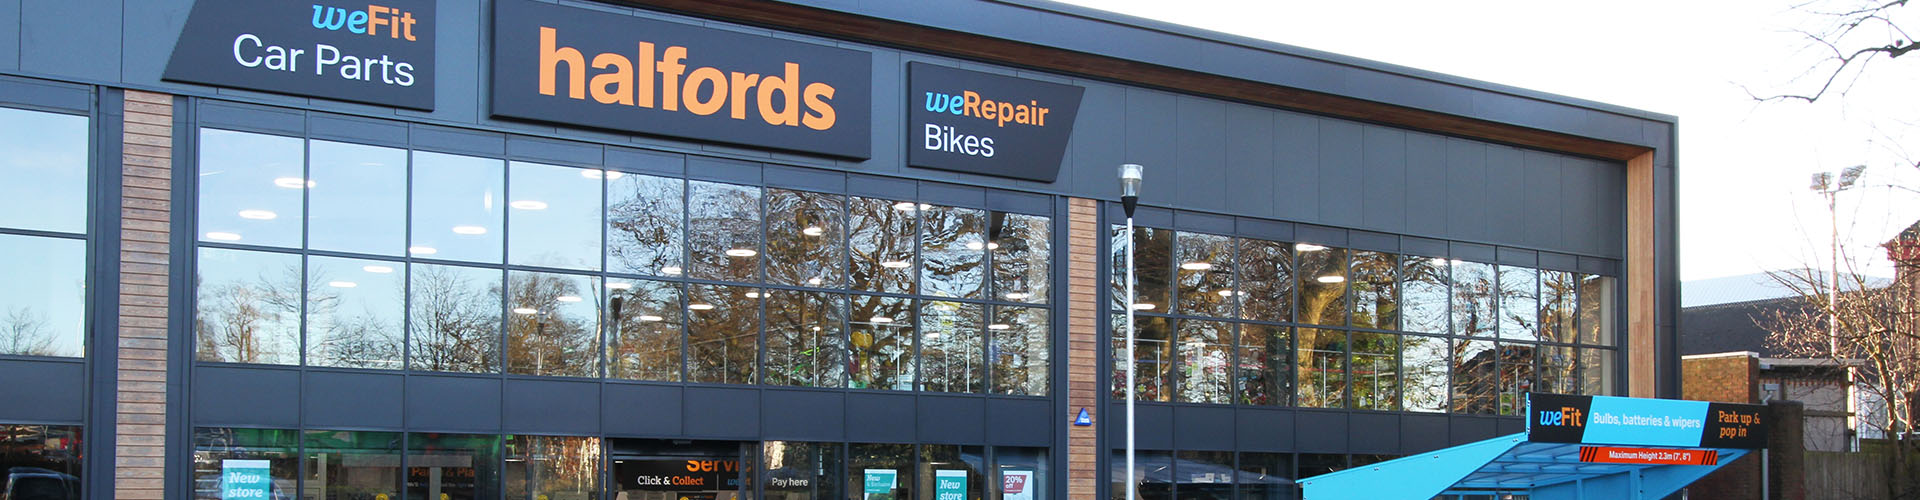 halfords-store-of-the-future.jpg